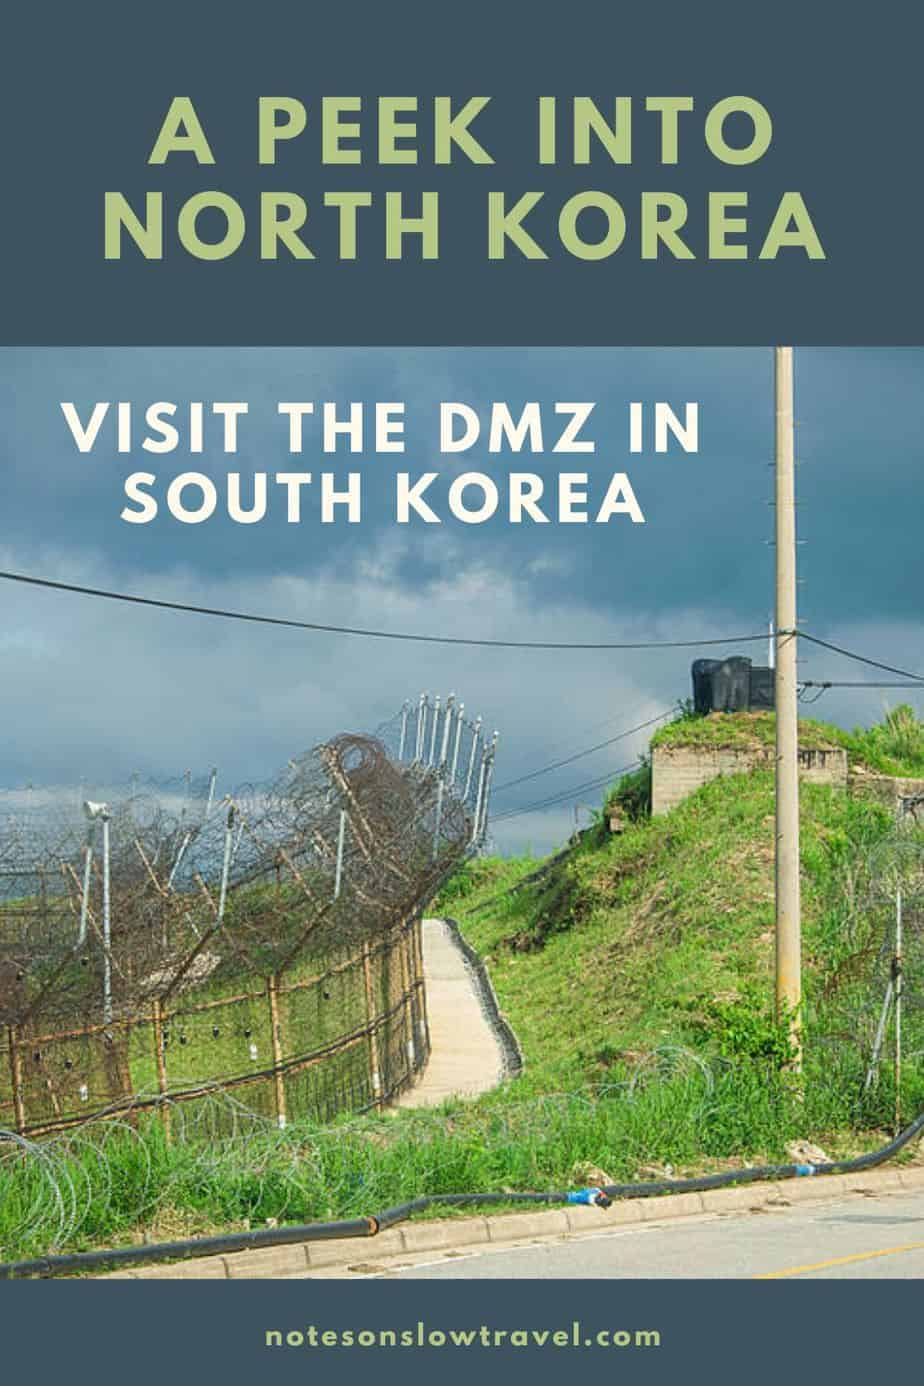 DMZ, Demilitarized Zone in Korea